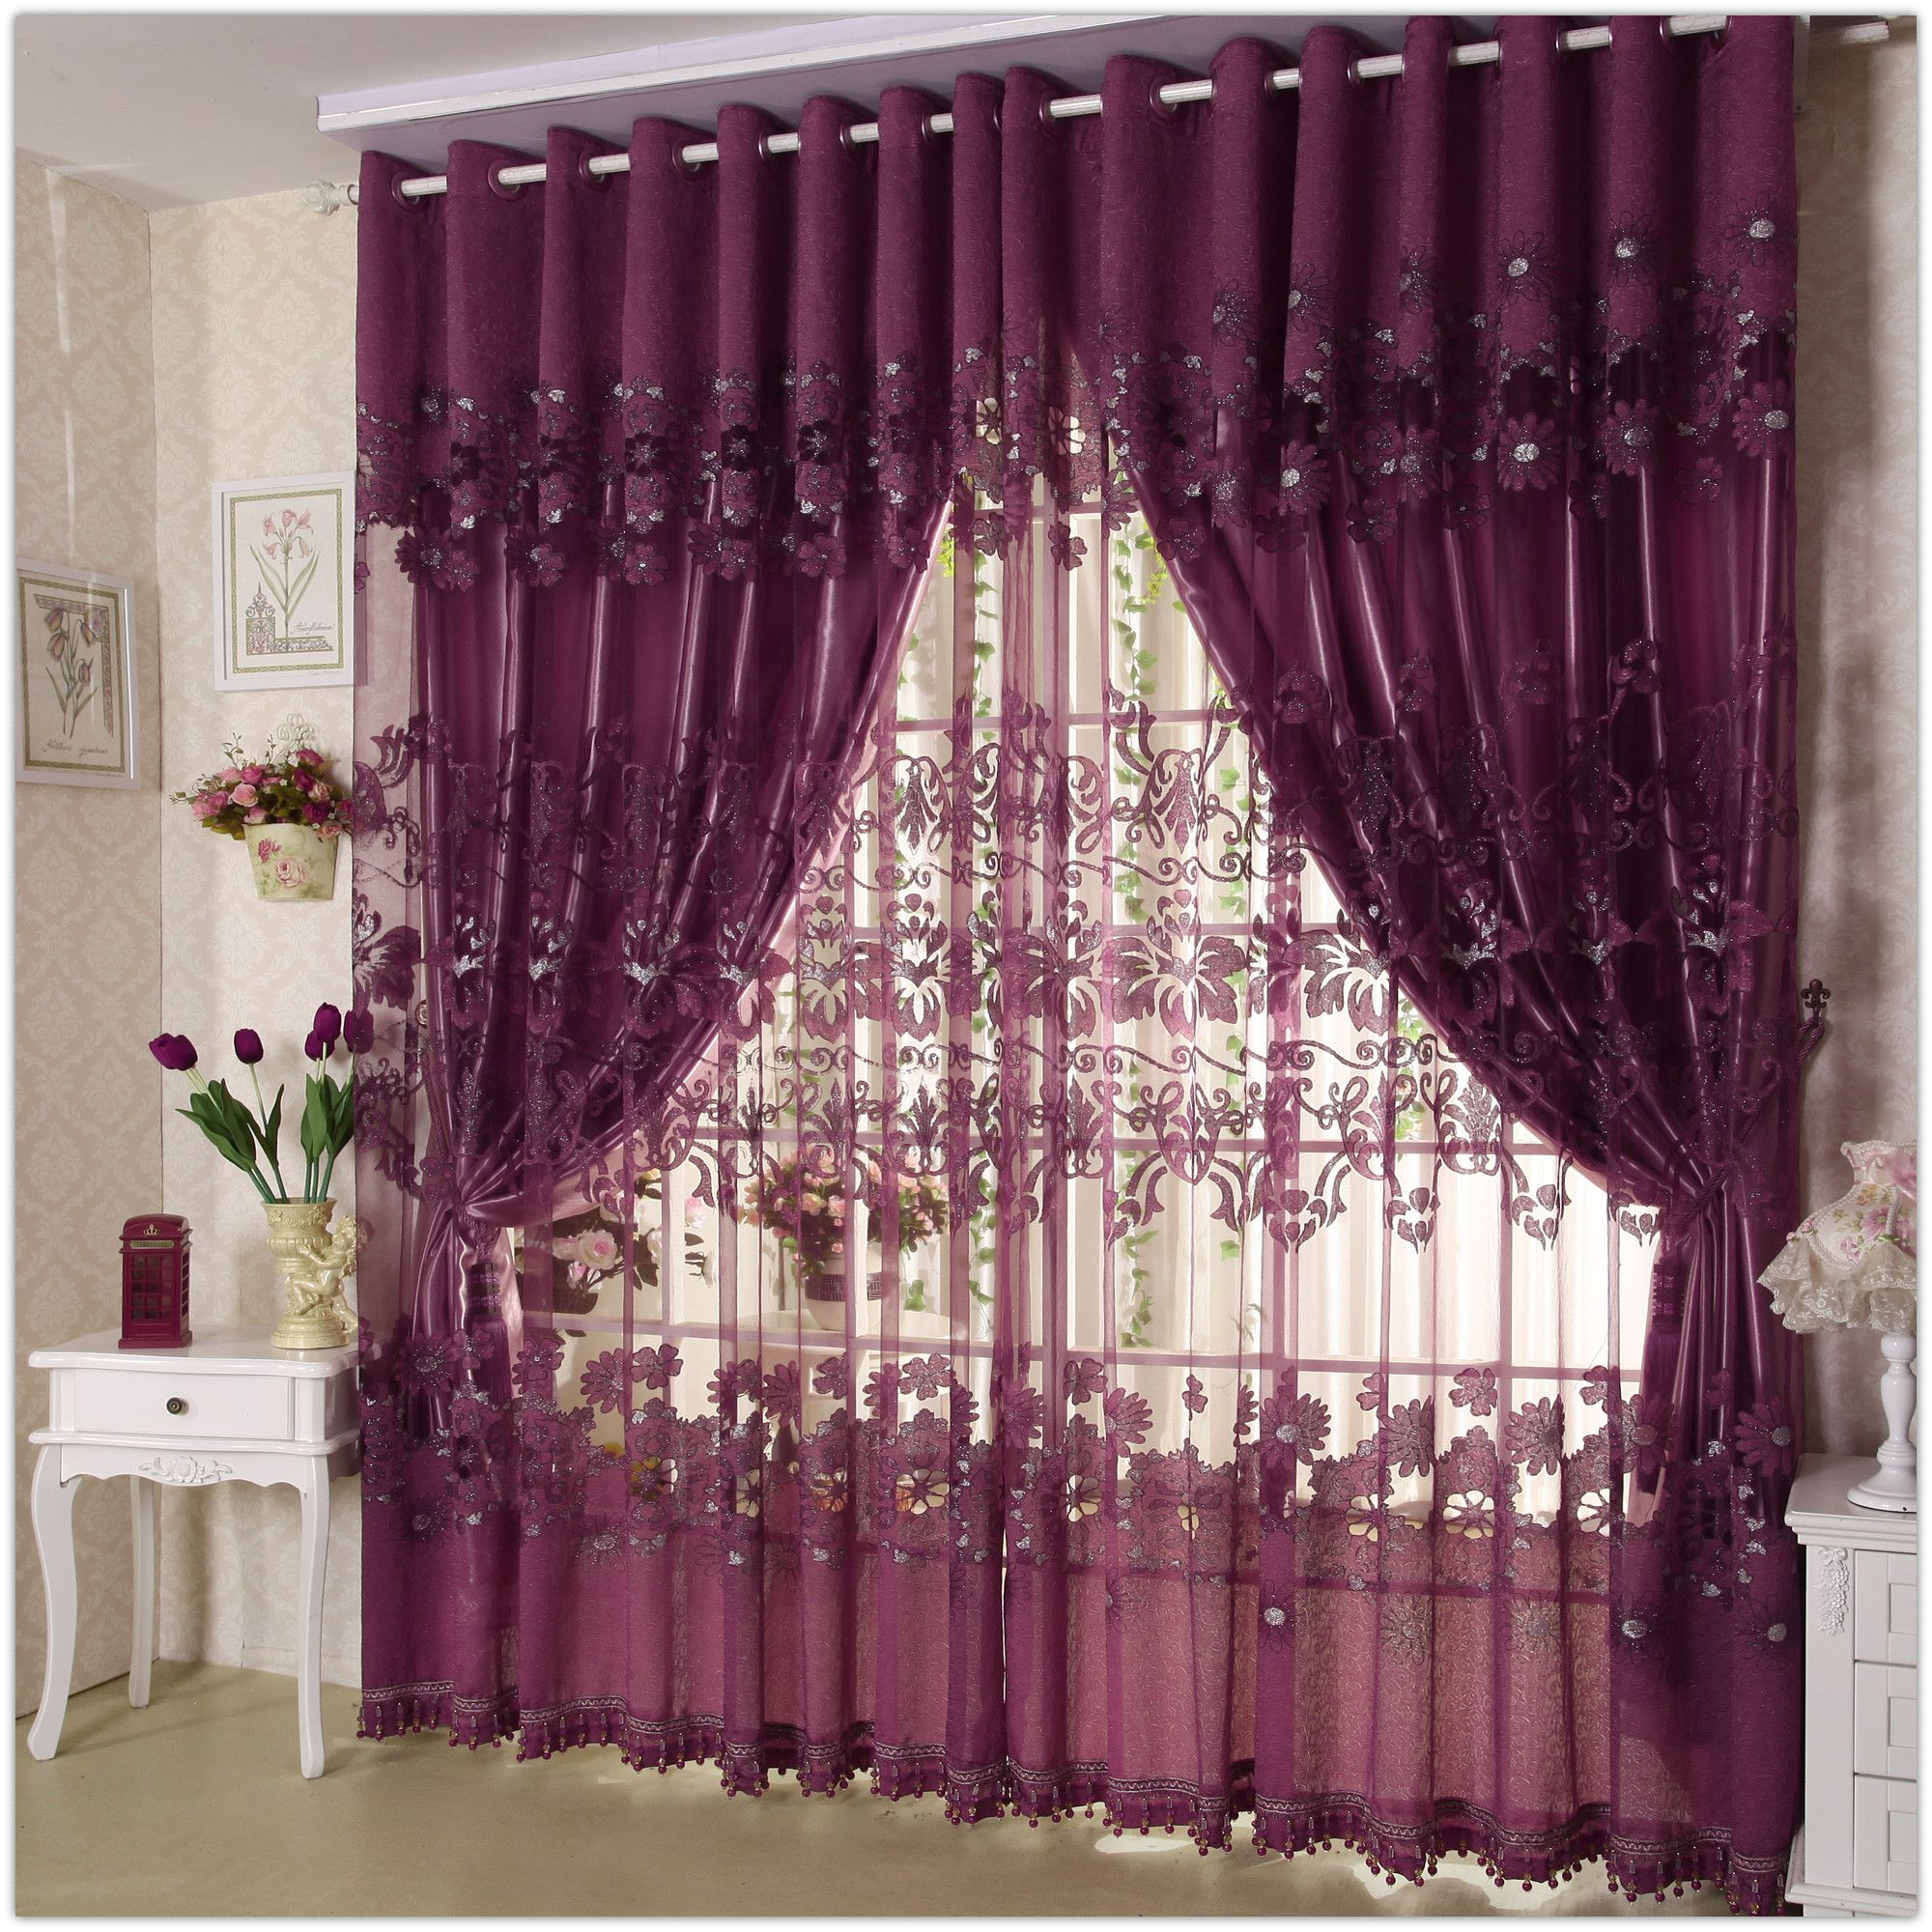 Purple Living Room Curtains Unique Curtain Designs For Living Room Window Decorations Unique